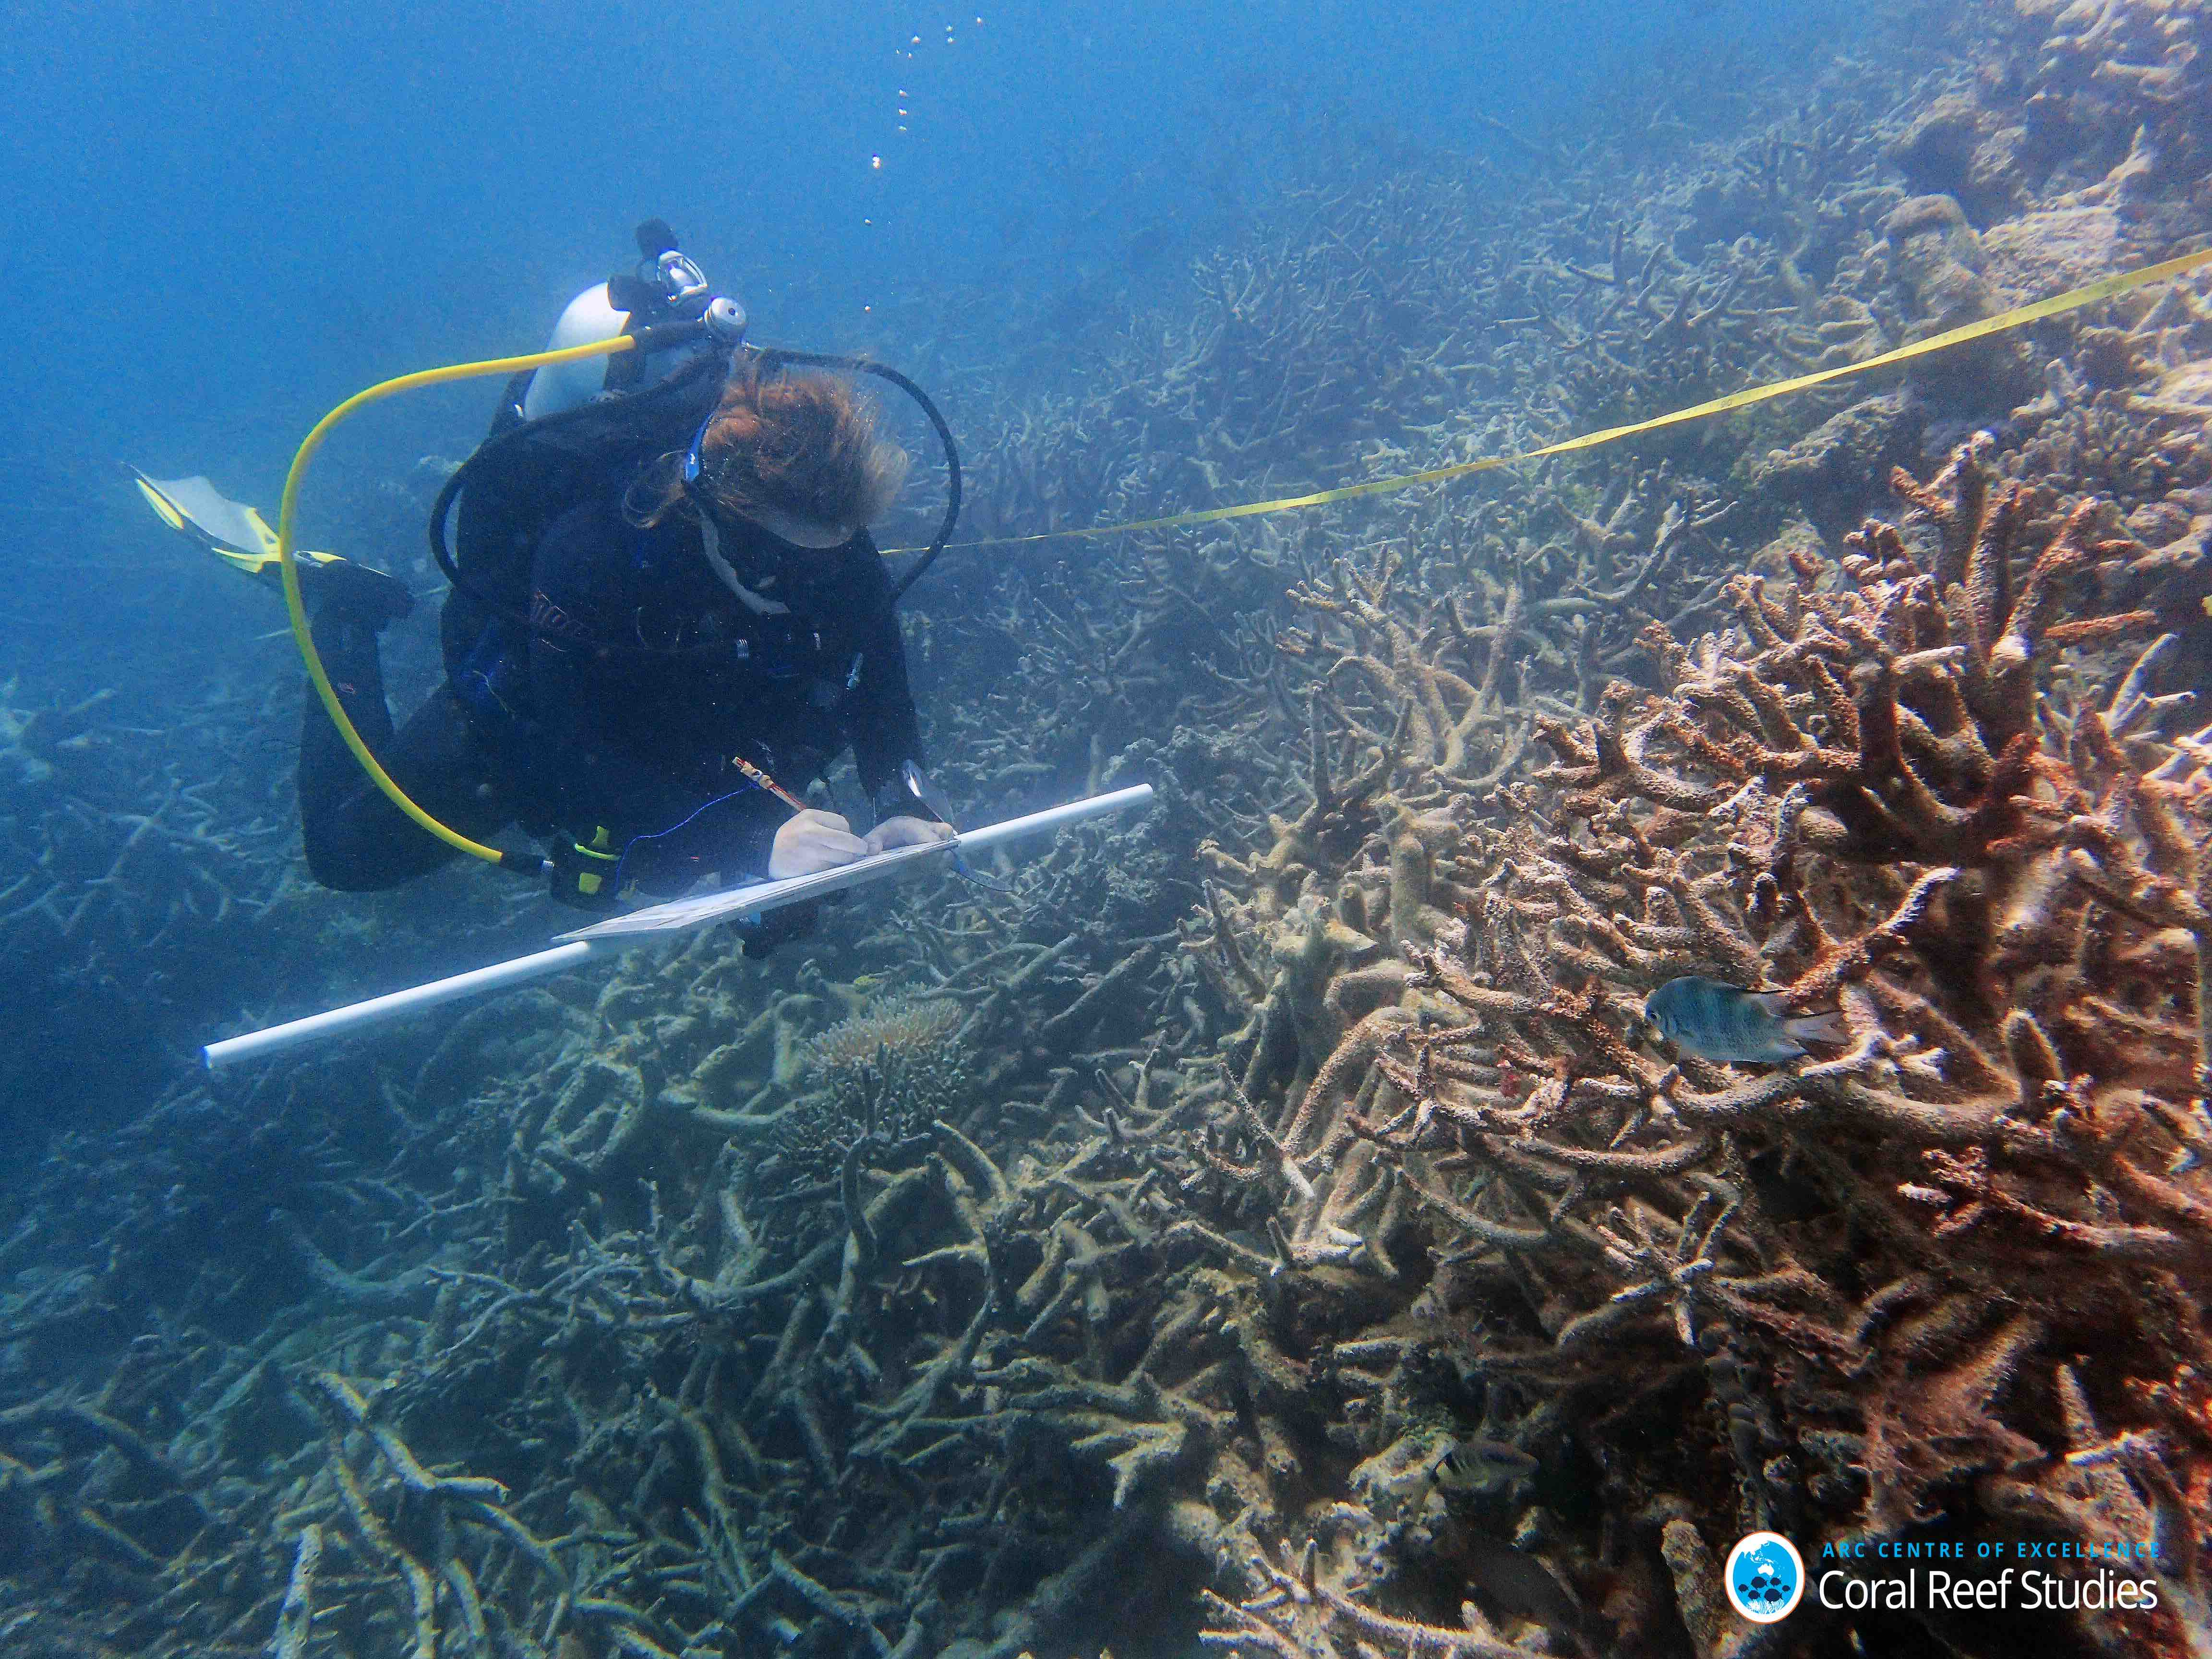 Damage to the Great Barrier Reef has been assessed after the worst coral bleaching event ever recorded.